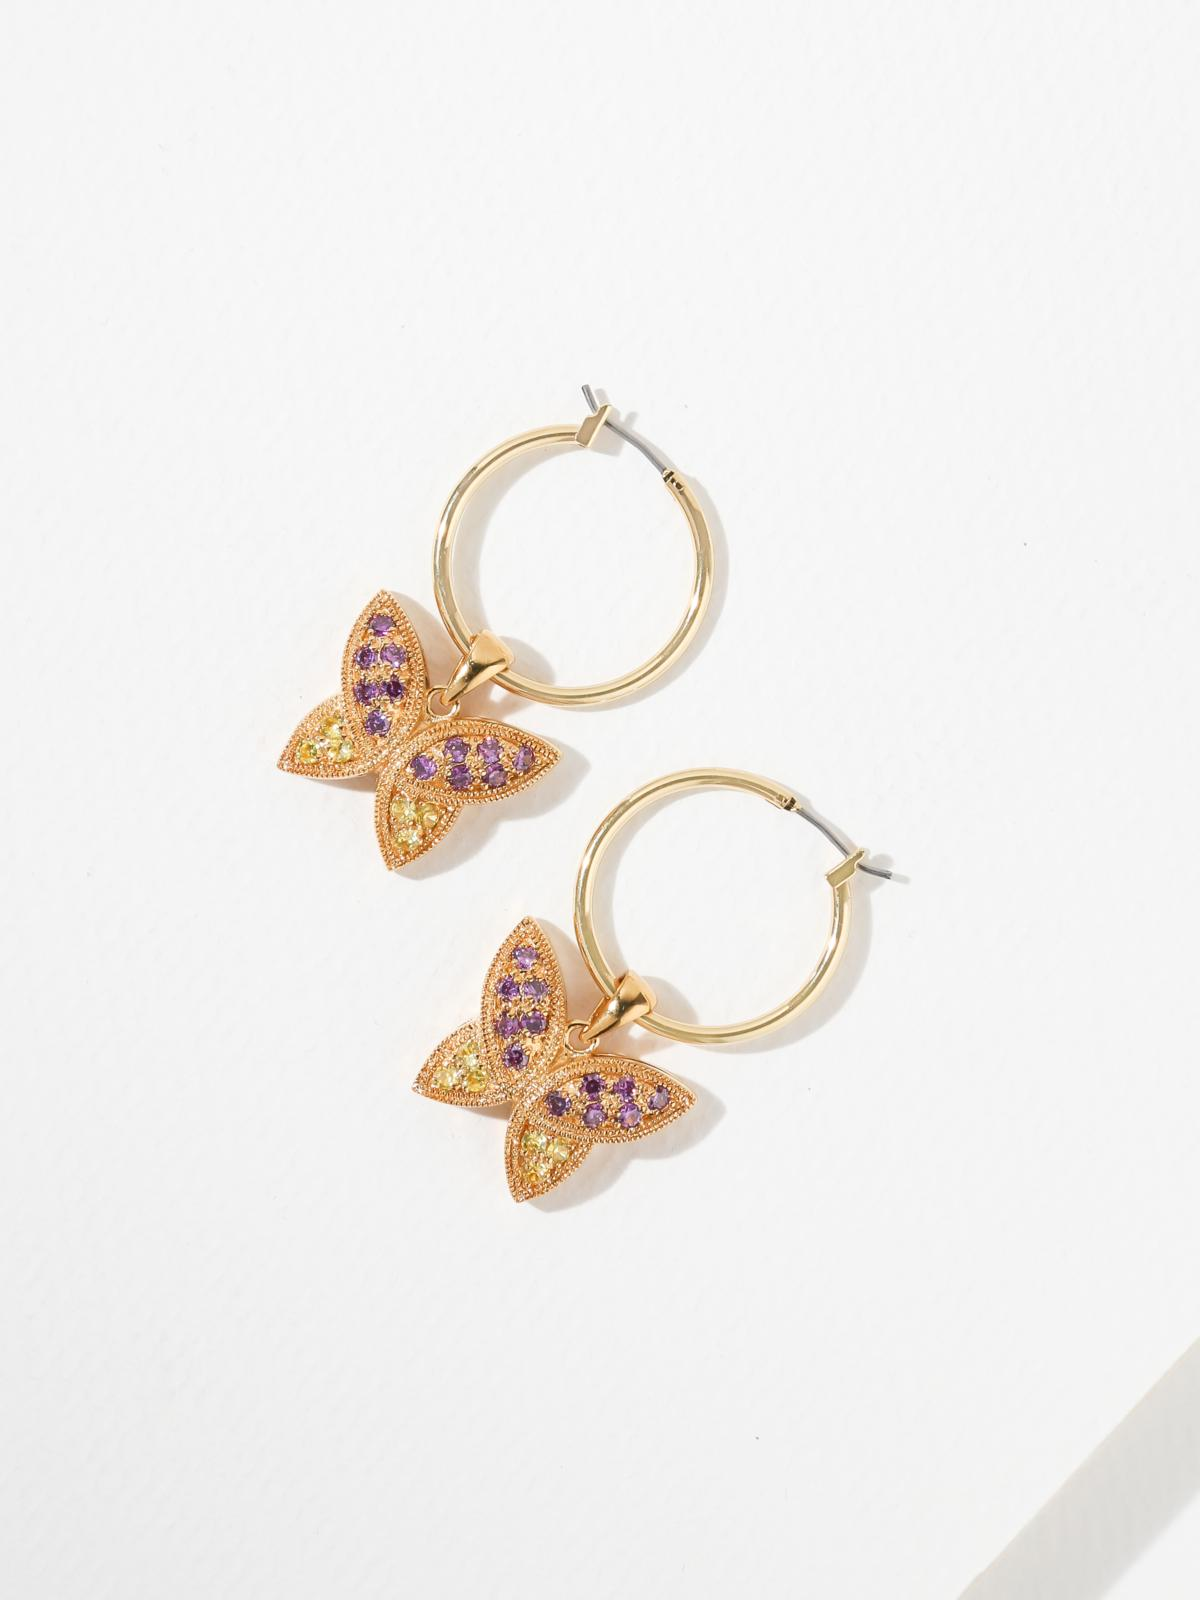 The Spellbound Earrings